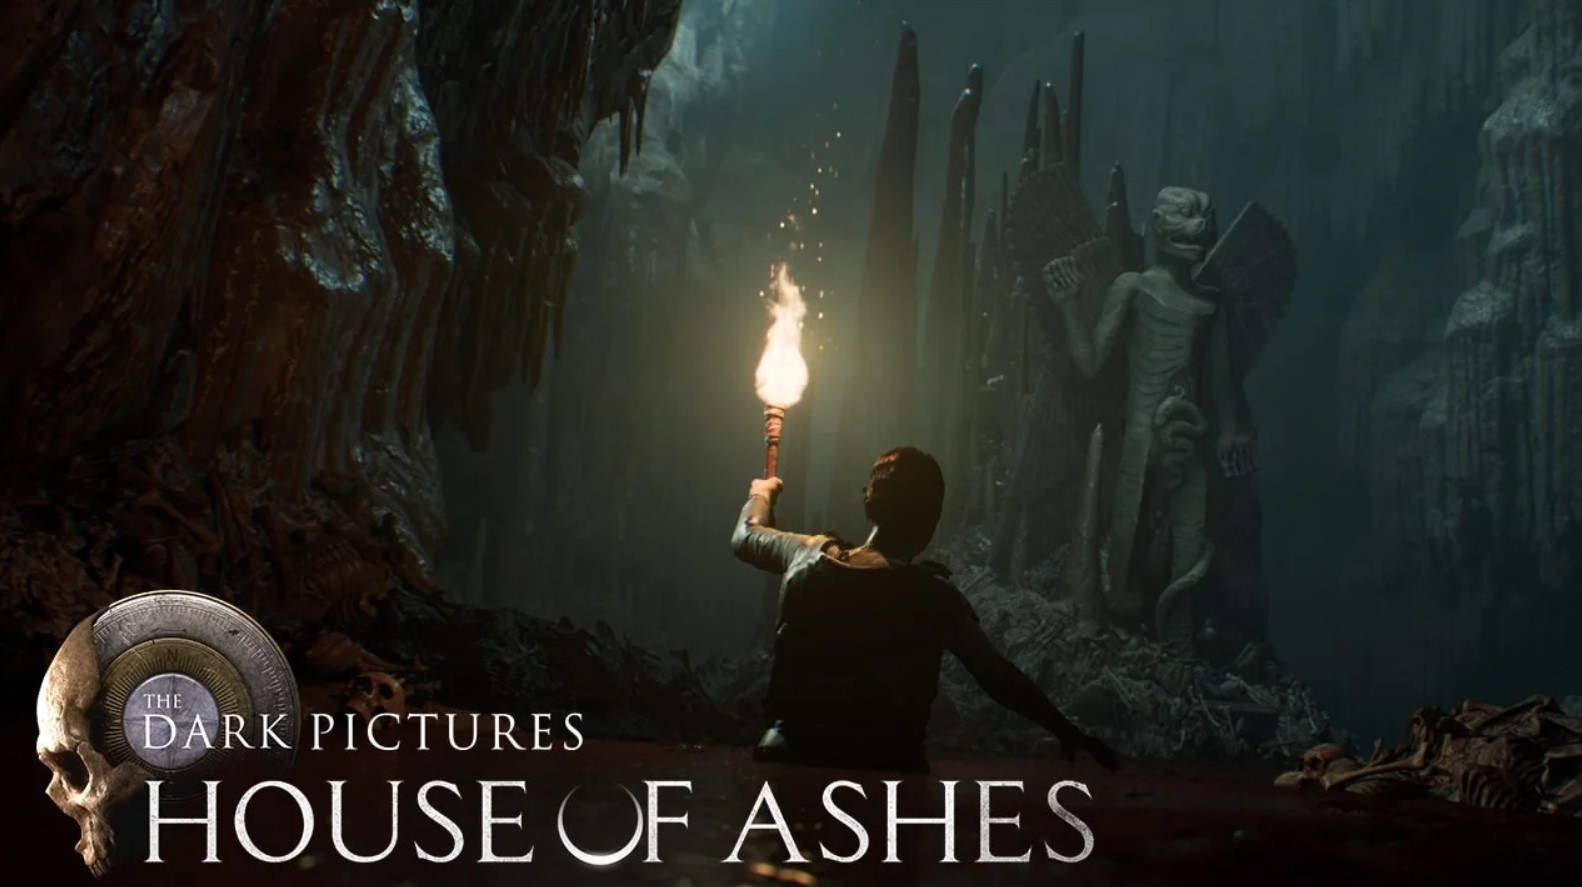 The Dark Pictures House of Ashes Full Version Free Download Nintendo Switch